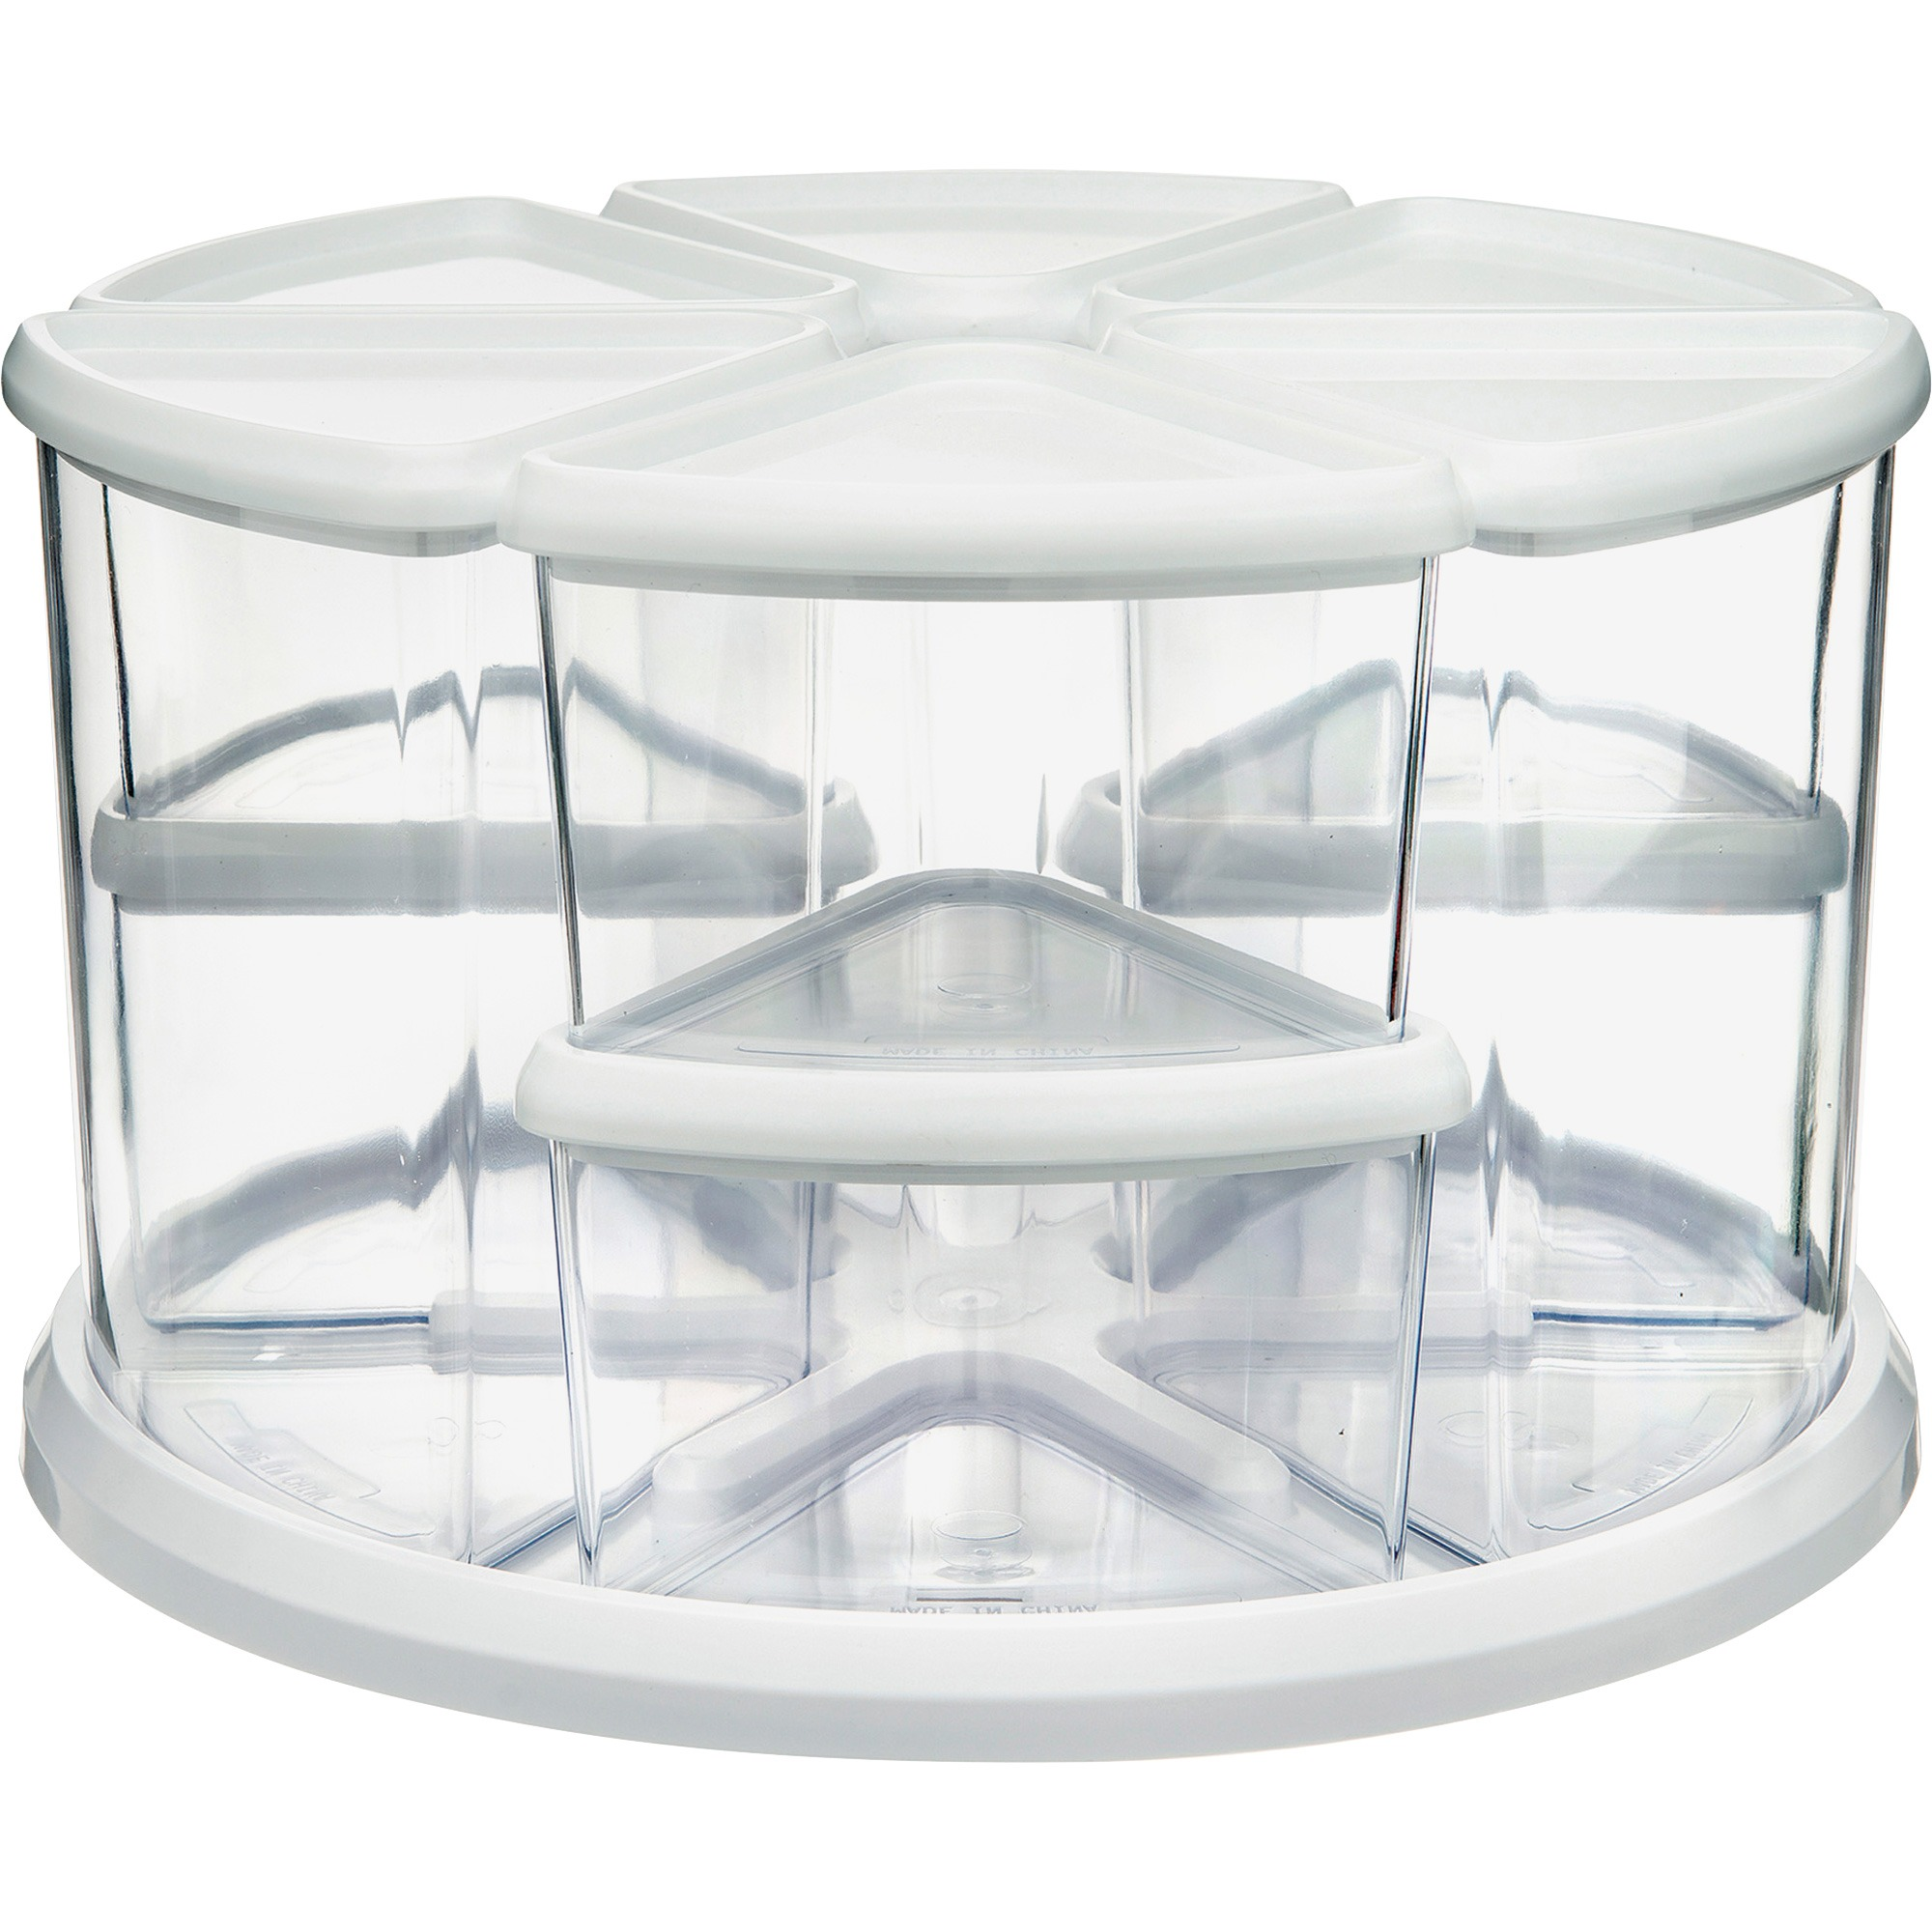 deflecto Nine Canister Carousel Organizer, Plastic, 11 1/8 x 11 1/8, White/Clear